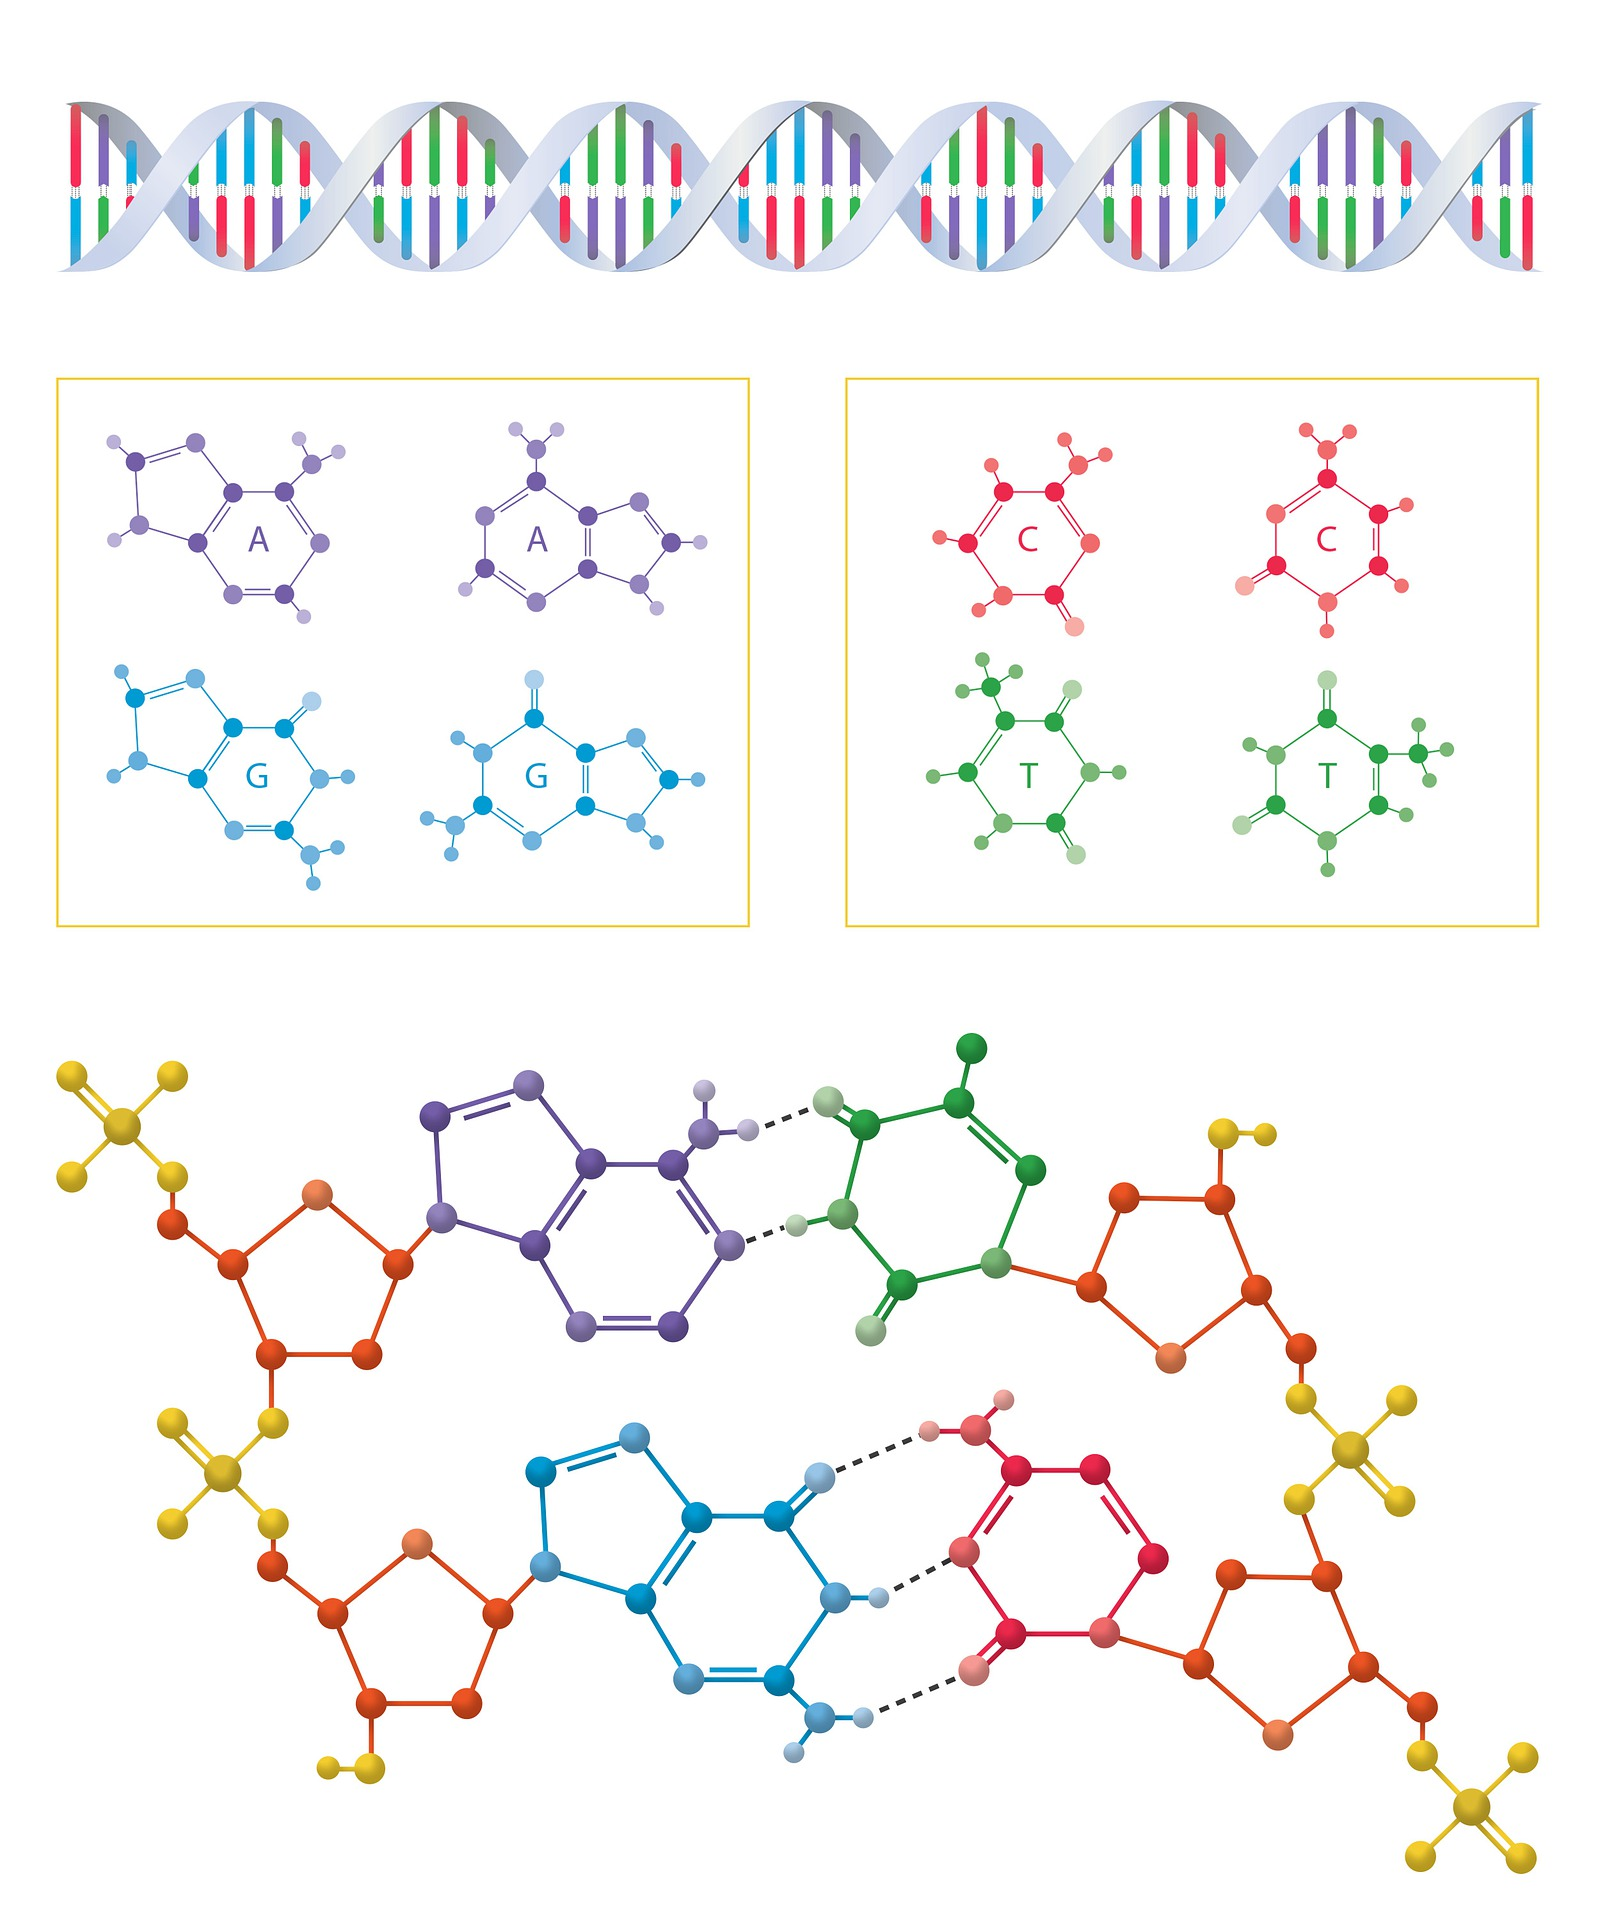 DNA and amino acid schematics.